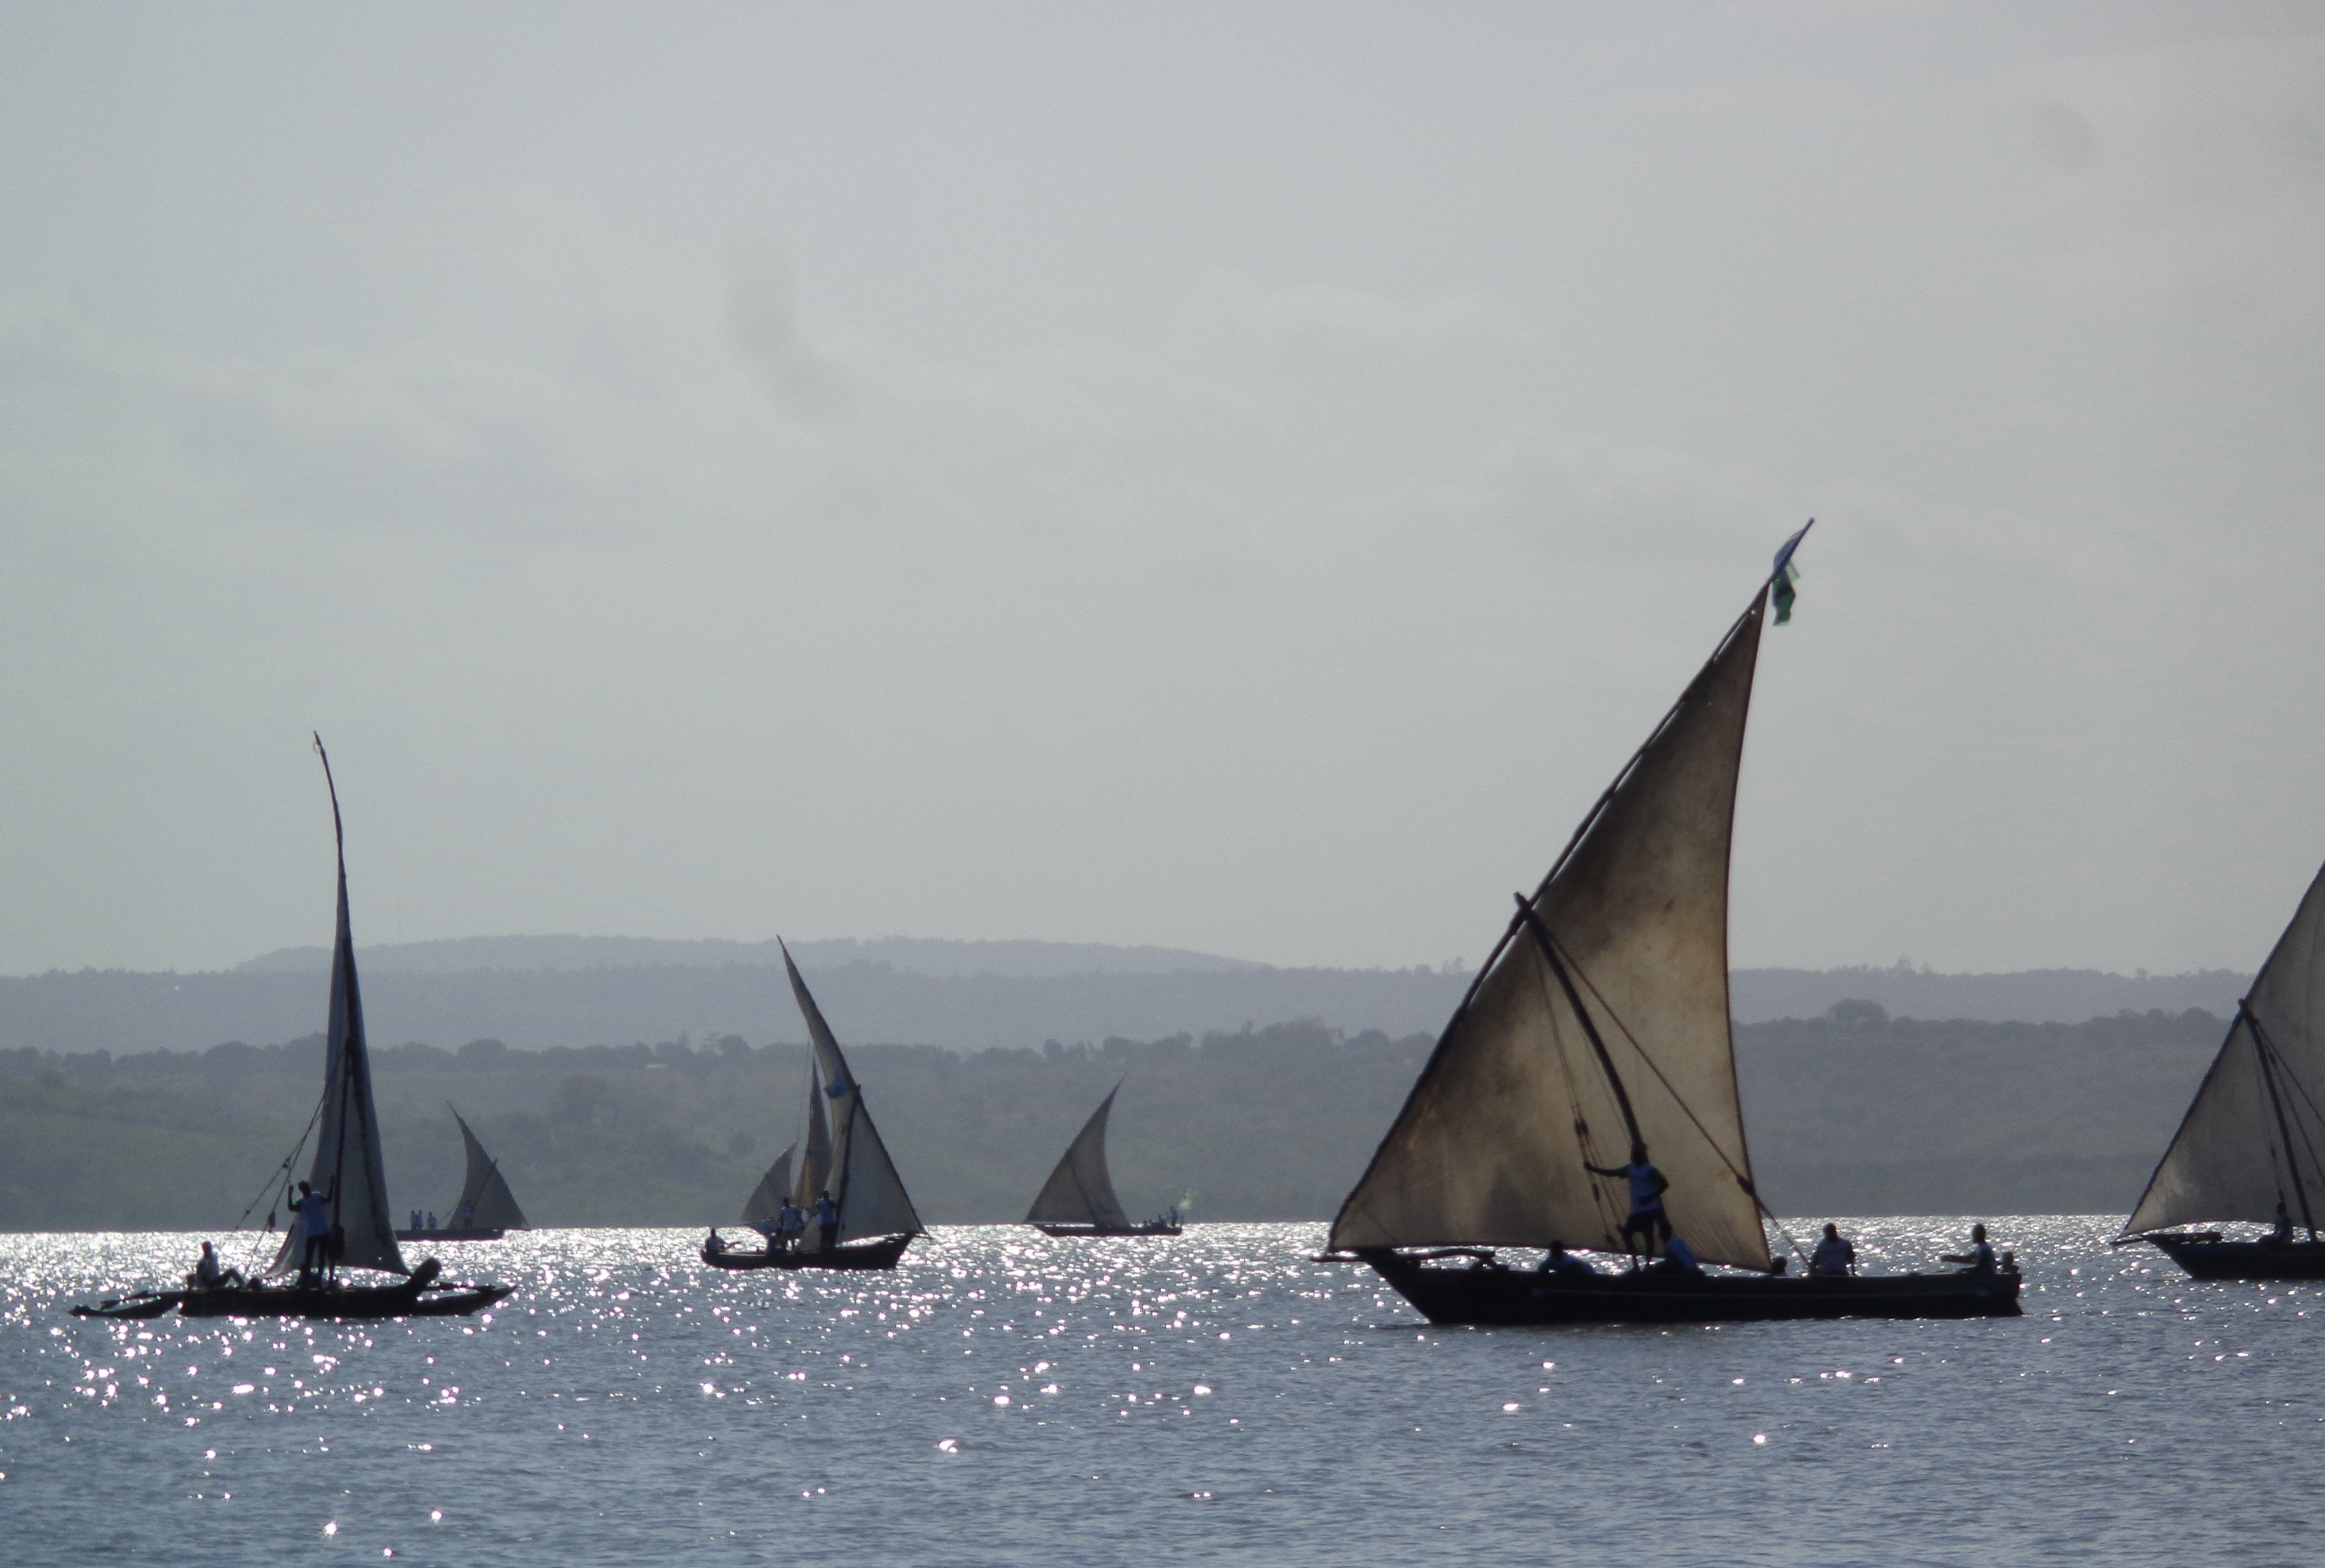 Dhow Races in Kilifi, Kenya. Bettina Ng'weno, 2013.